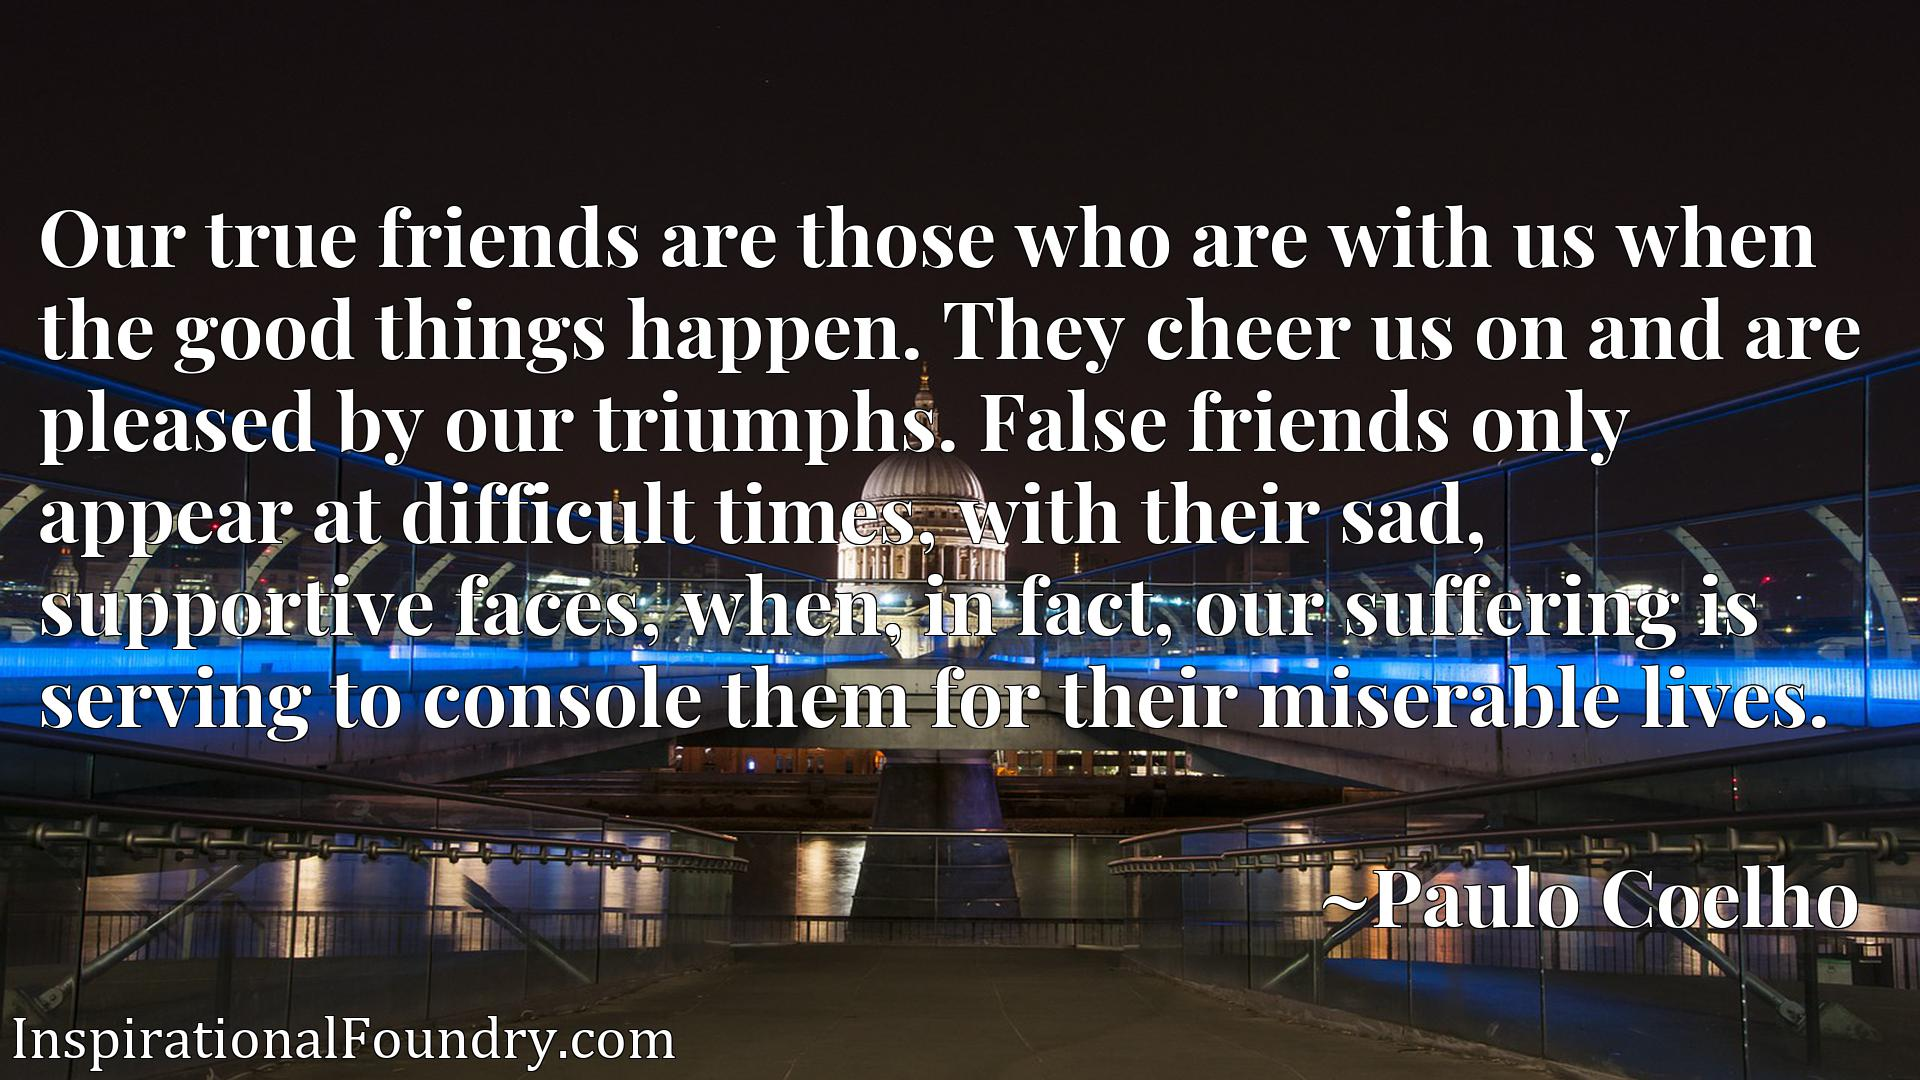 Our true friends are those who are with us when the good things happen. They cheer us on and are pleased by our triumphs. False friends only appear at difficult times, with their sad, supportive faces, when, in fact, our suffering is serving to console them for their miserable lives.